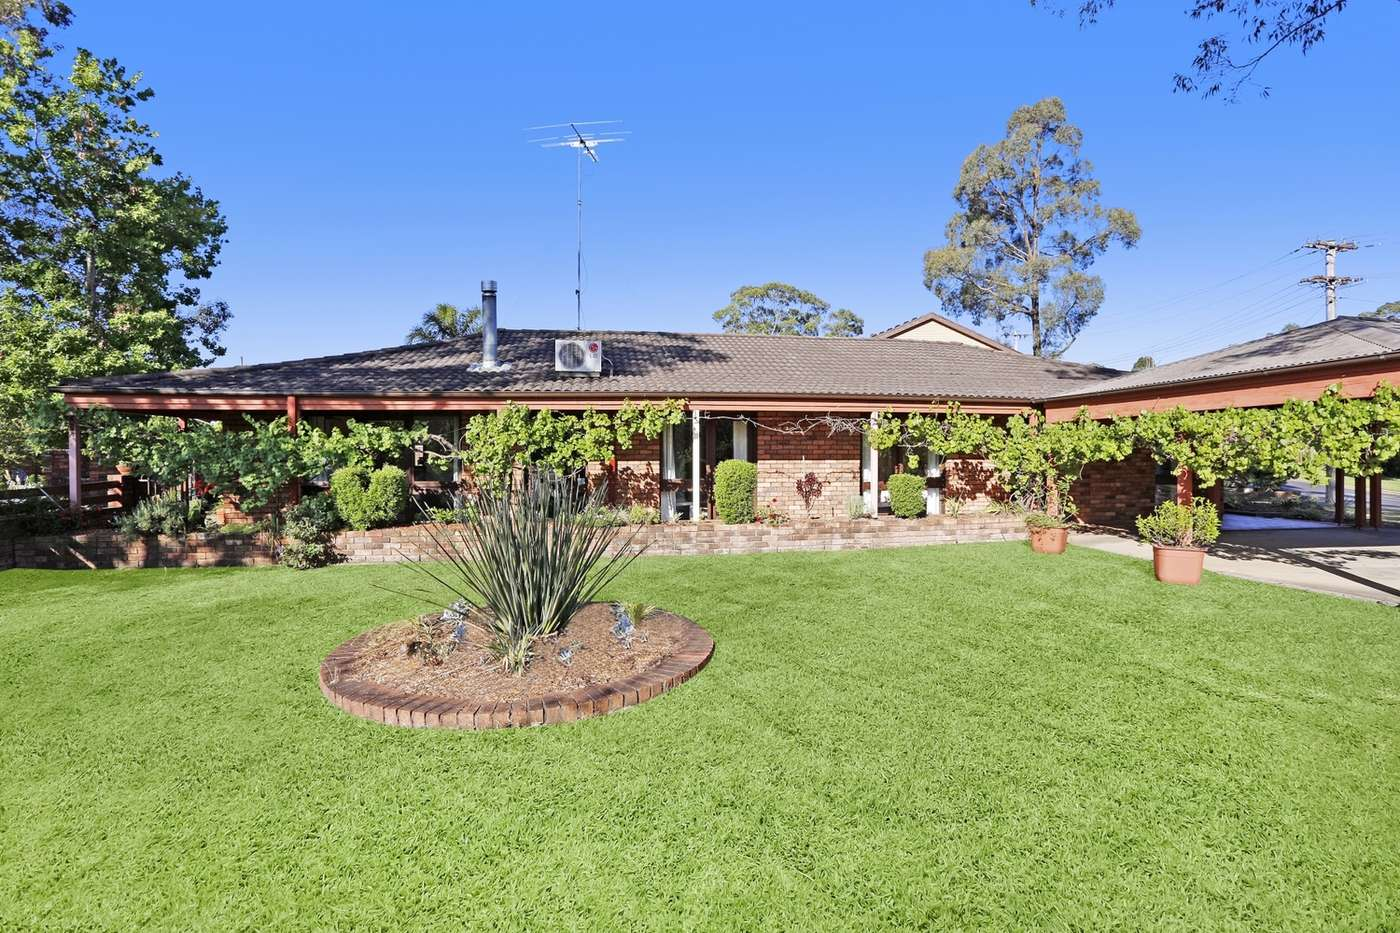 Main view of Homely house listing, 3 Wilton Street, Narellan, NSW 2567